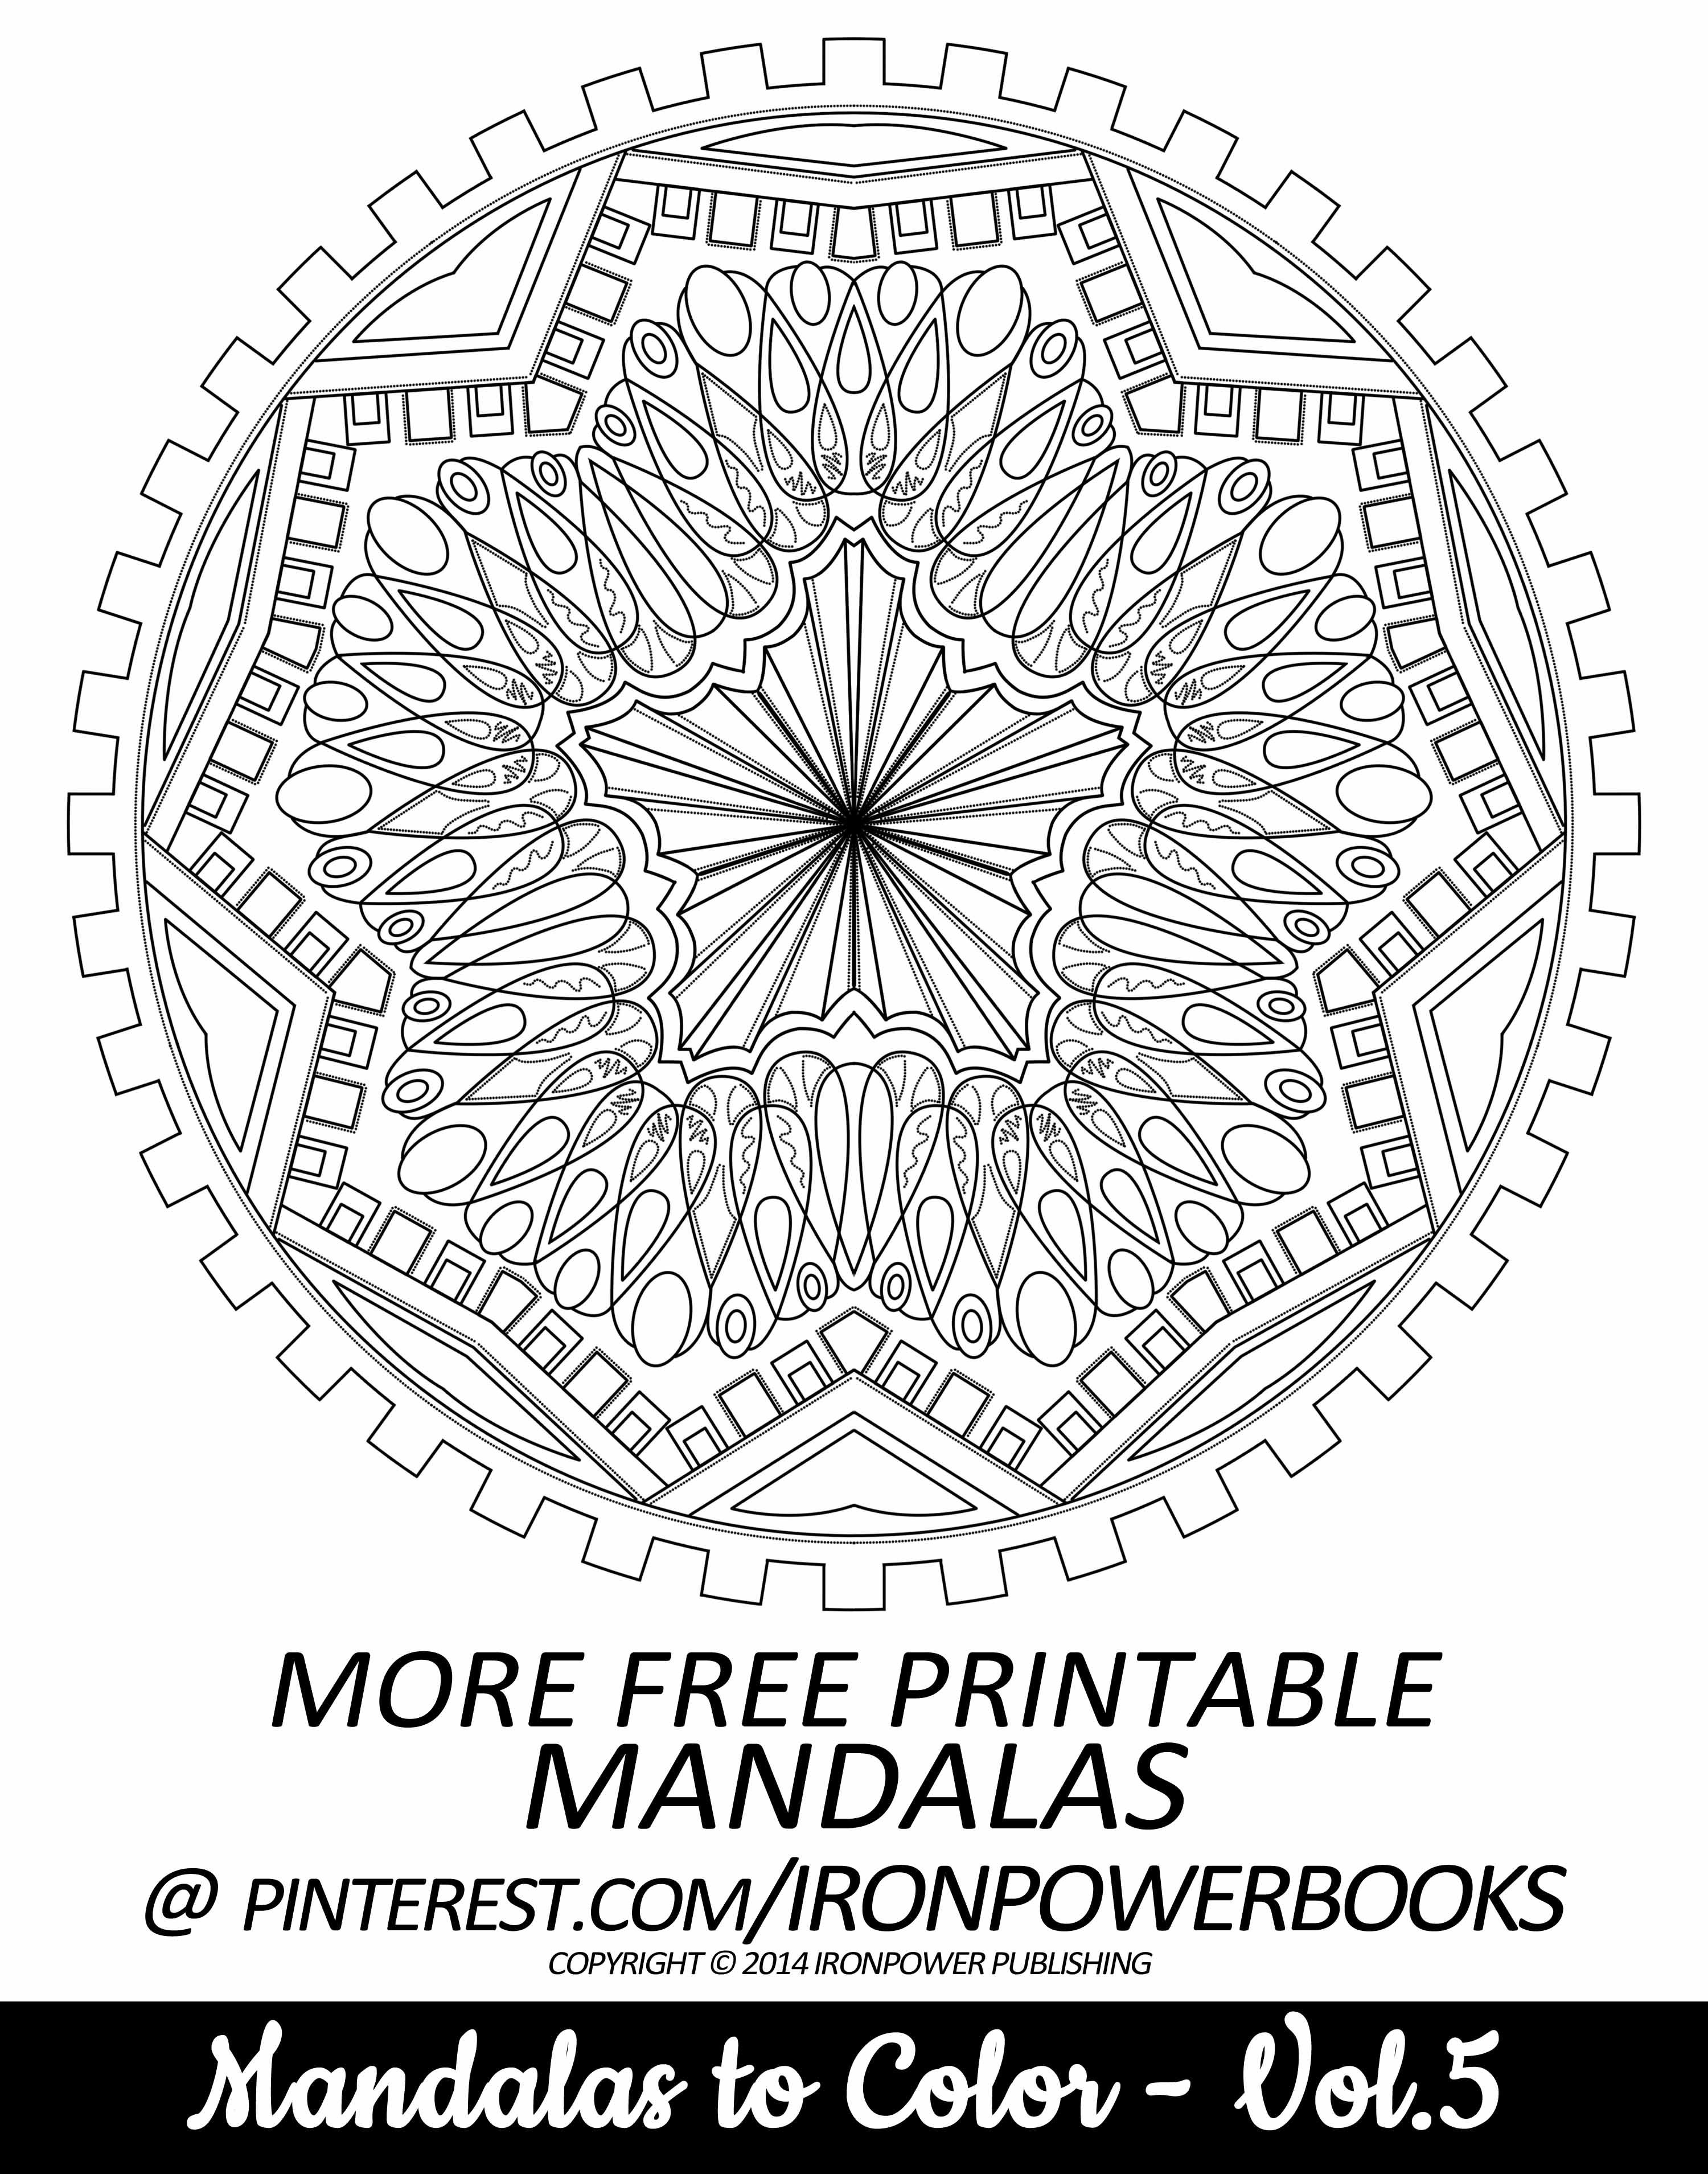 Unique mandala coloring pages -  Free Printable Mandala Coloring Pages Ironpowerbooks This Uniquely Design Mandala Page Is From